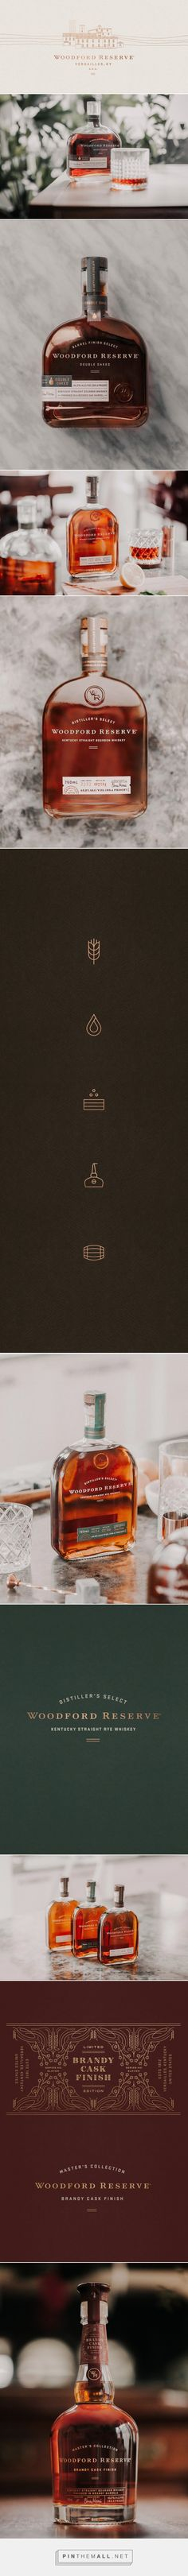 Woodford Reserve – Studio MPLS | A Branding & Packaging Design Agency | Minneapolis, MN - created via https://pinthemall.net